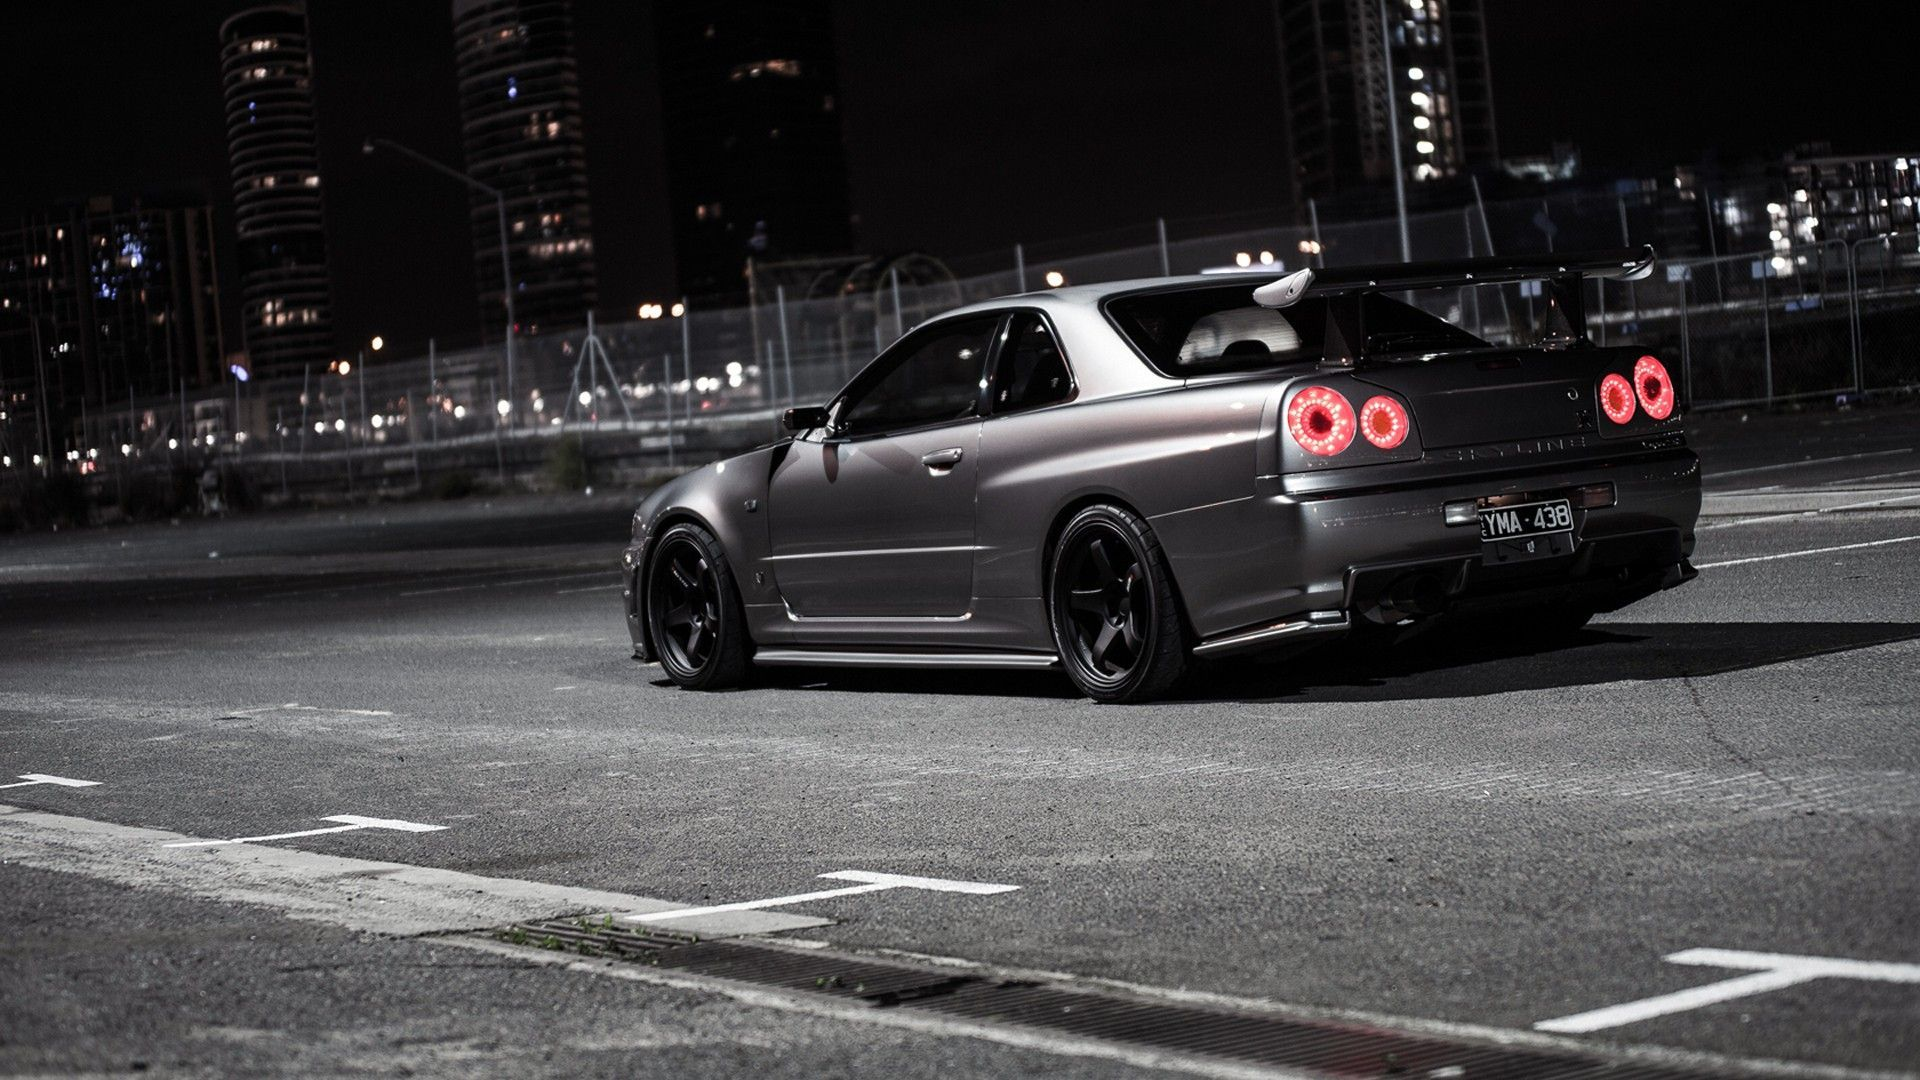 nissan nissan gtr r  Wallpapers  Wallpapers HD 1920x1080